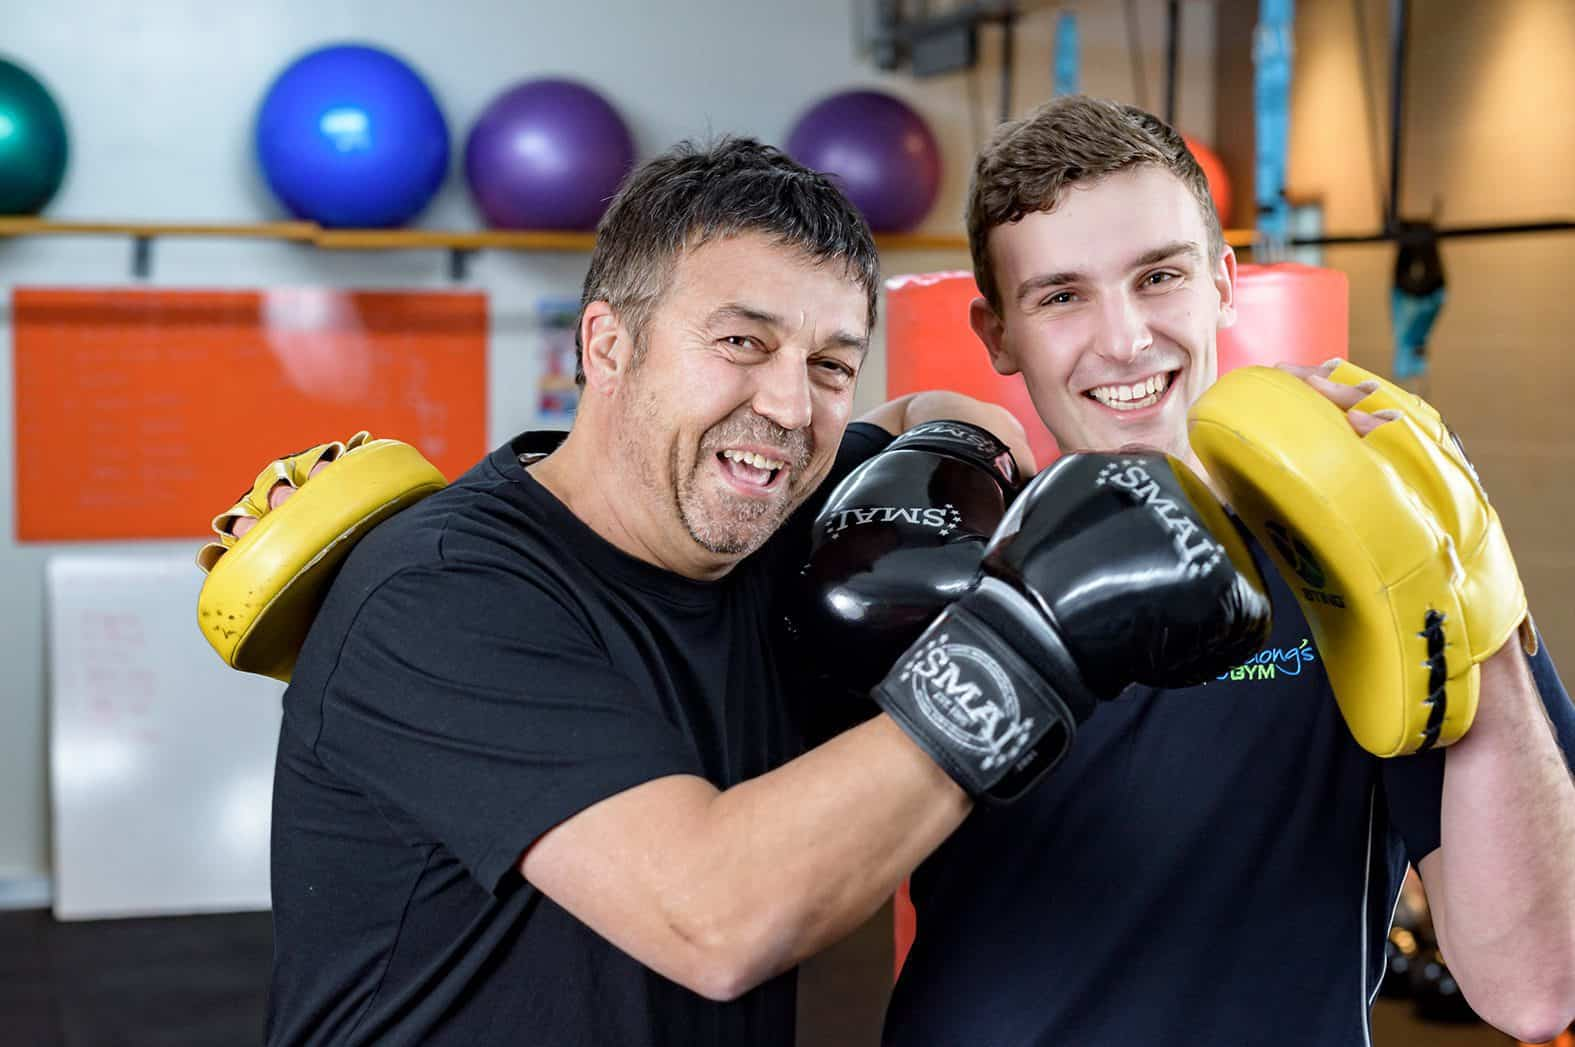 Personal Training at Geelong's Gym